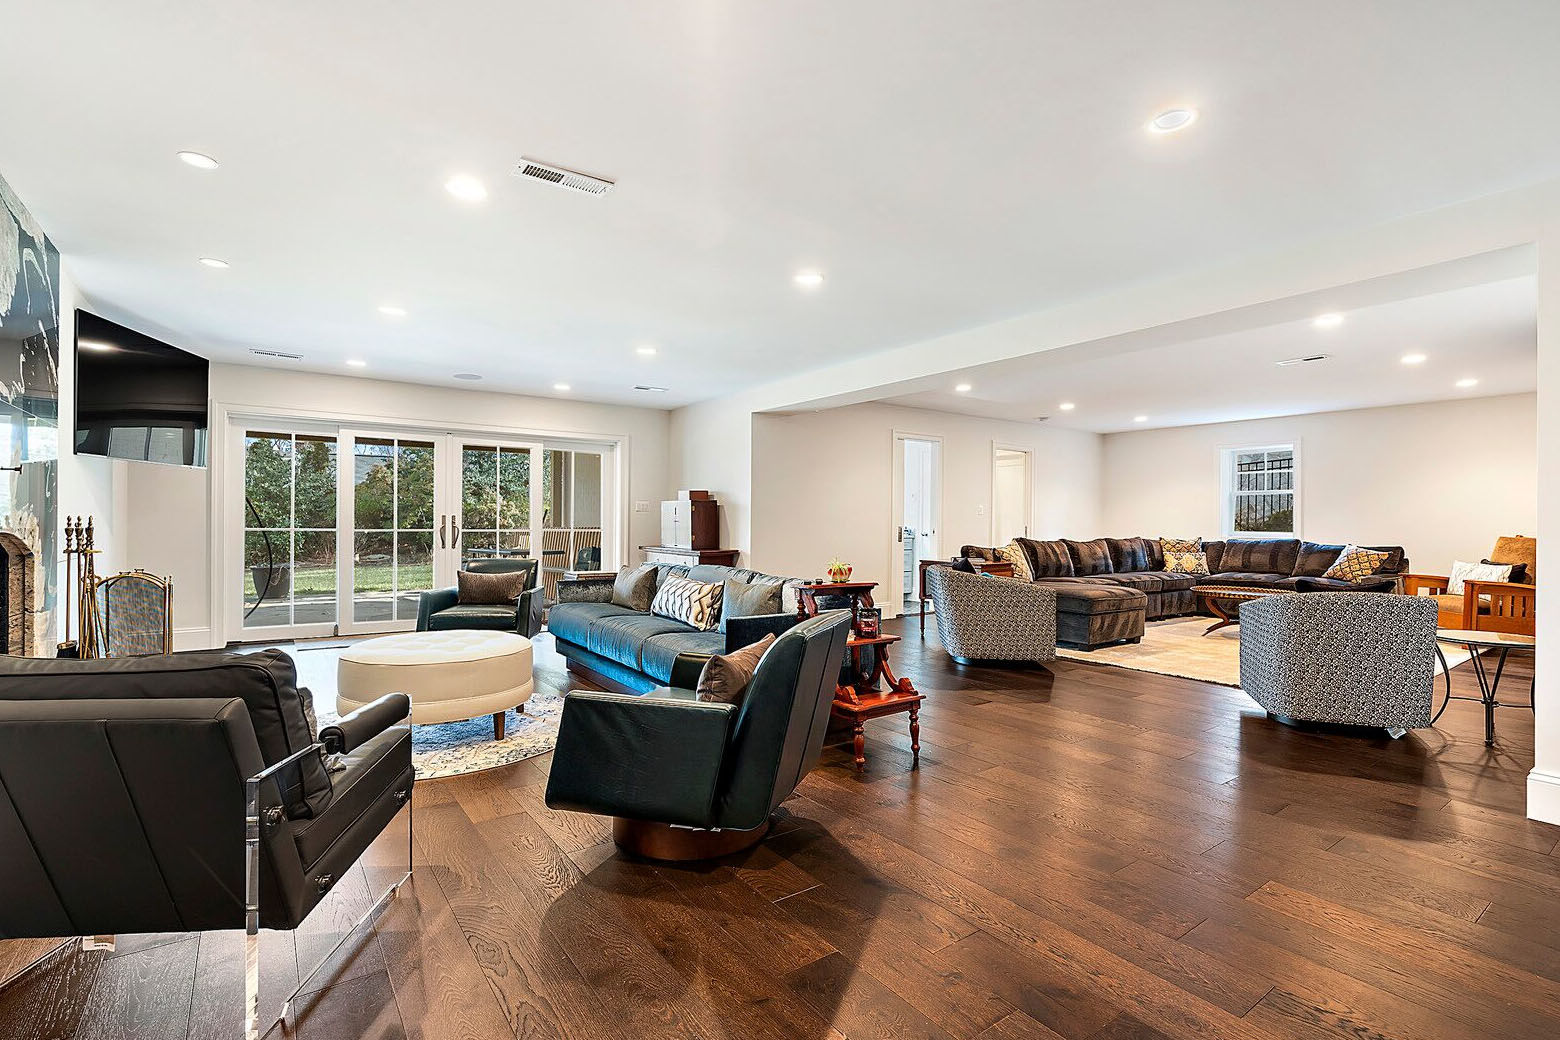 A family living space in the basement. (Courtesy Century 21 New Millennium/RealMarkets)